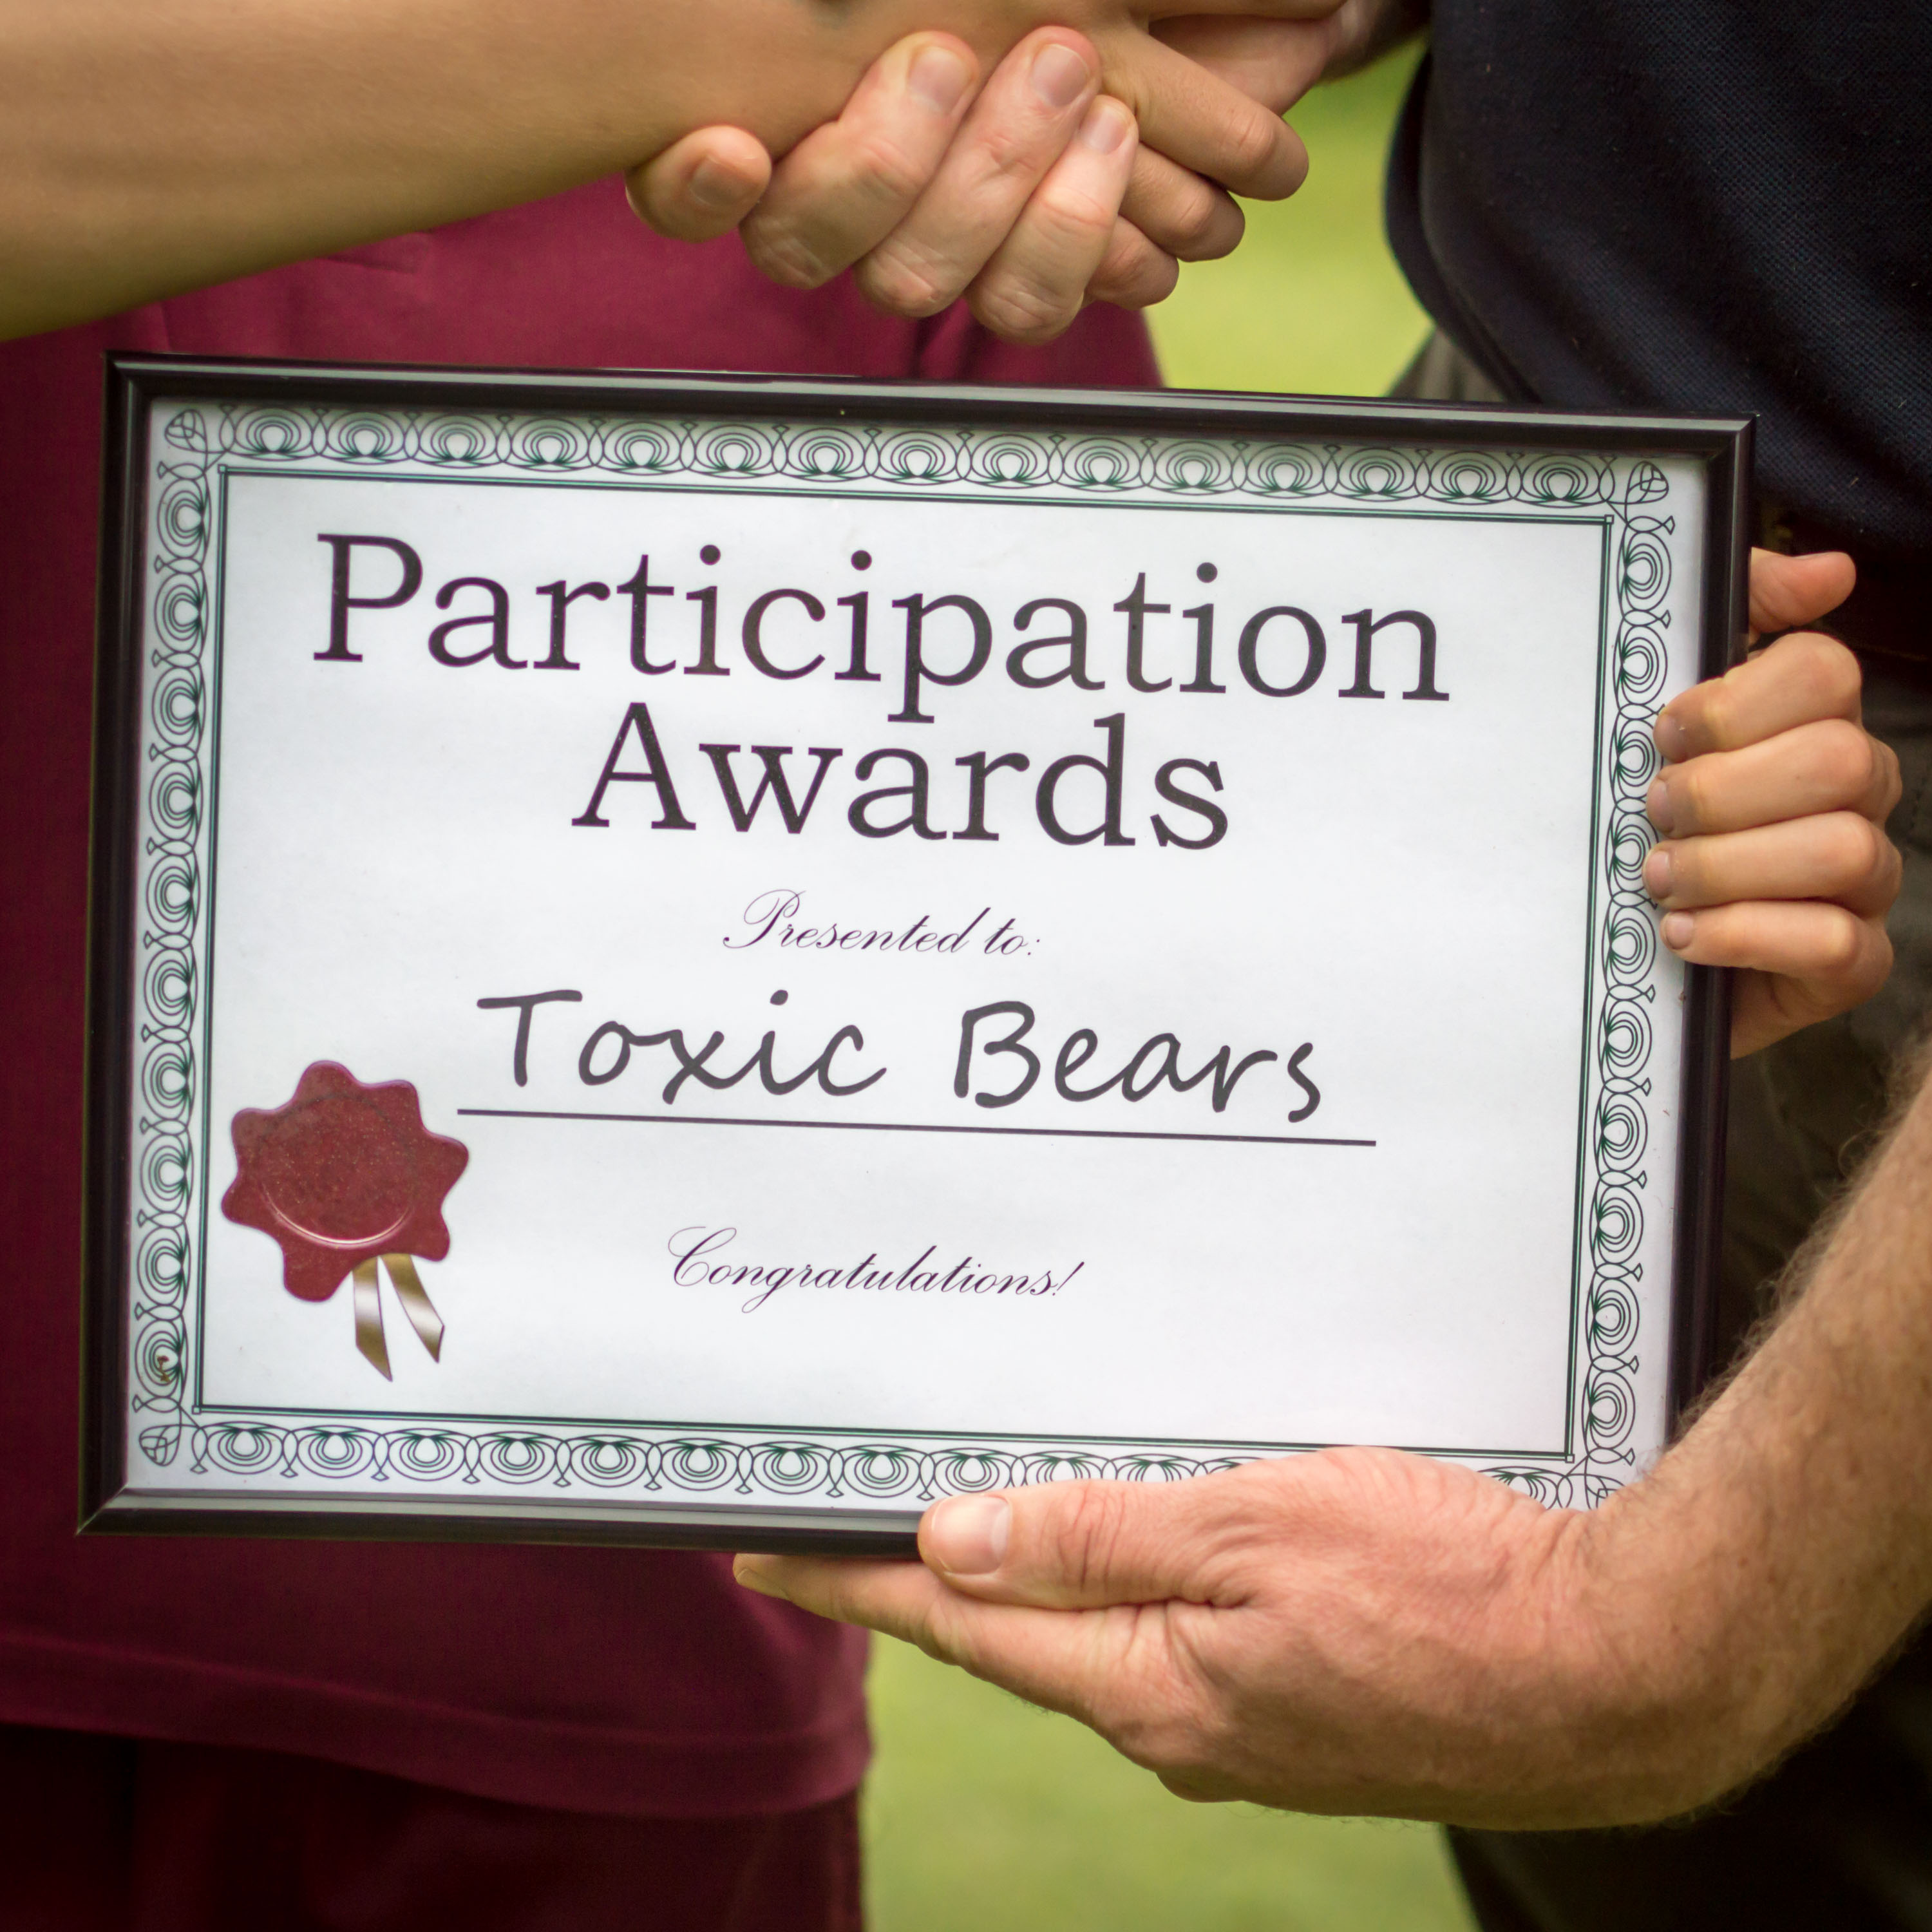 Participation Awards